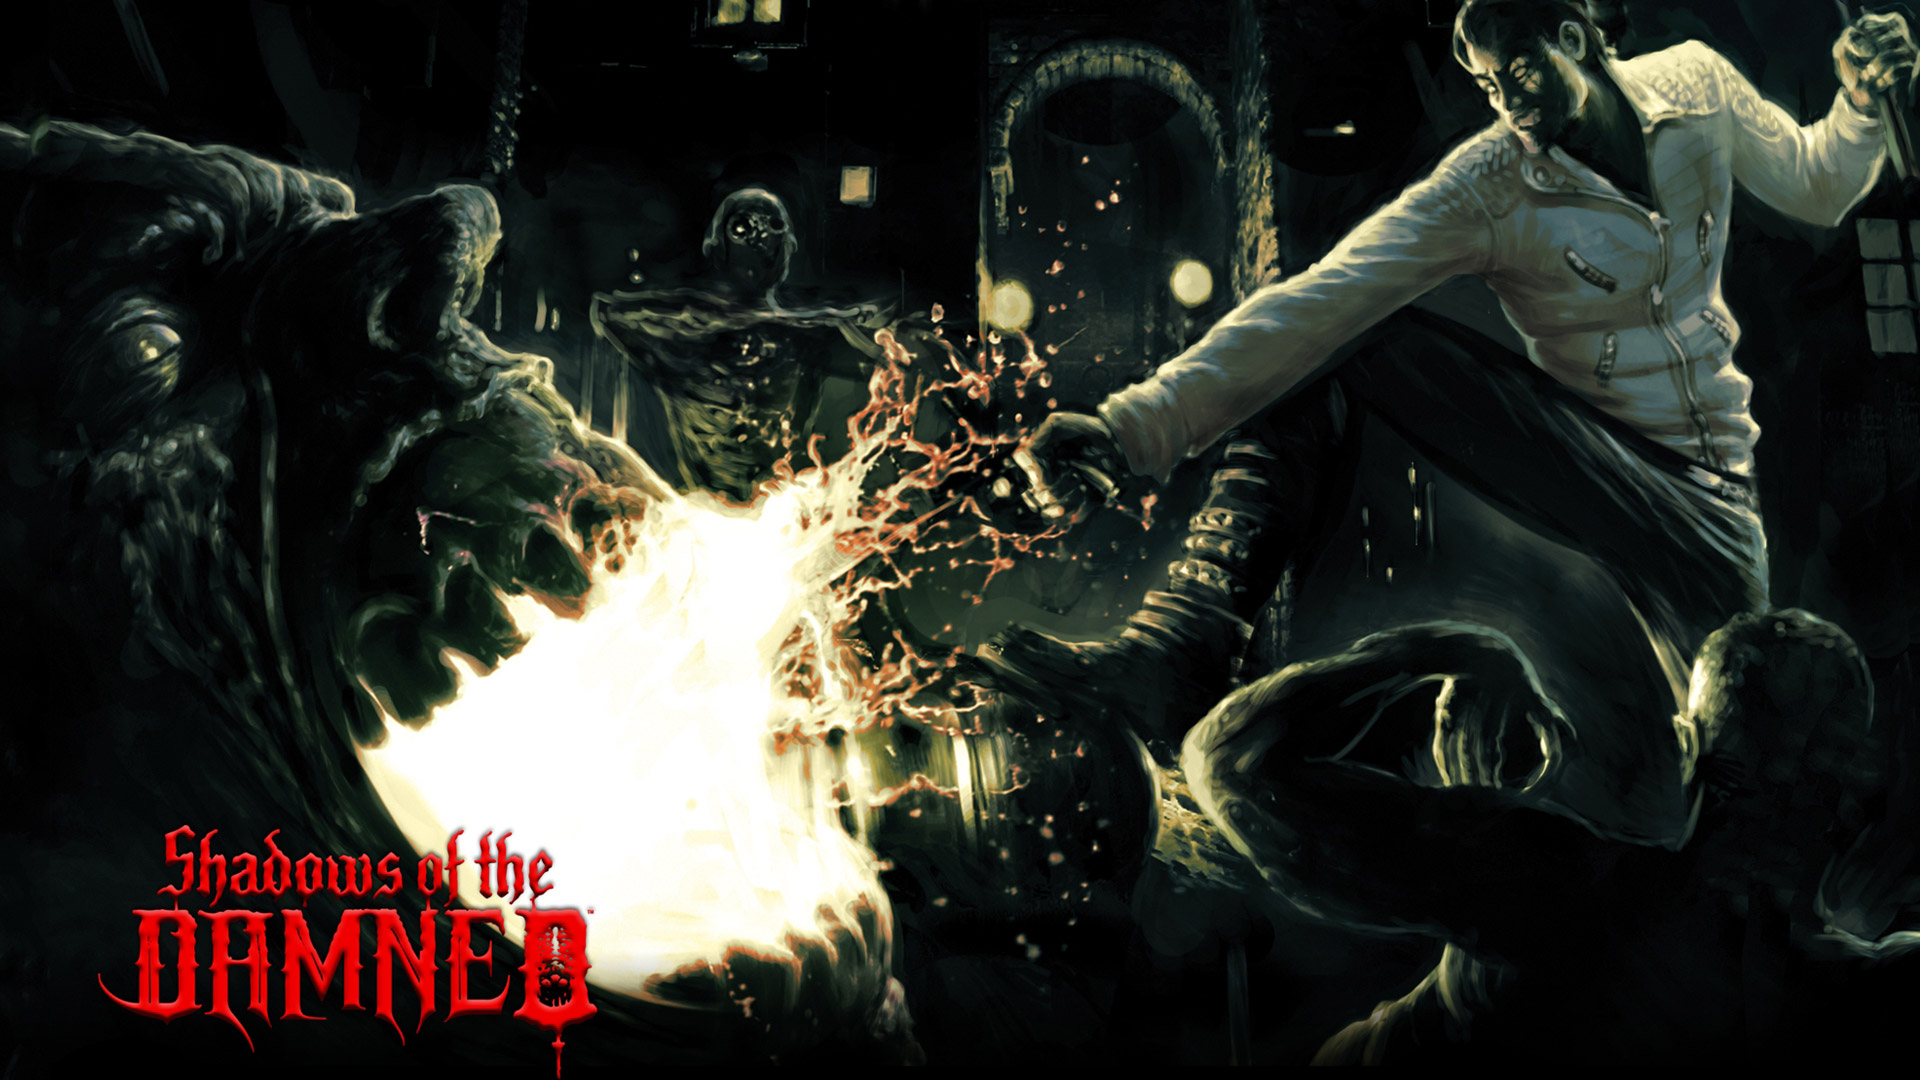 Shadows of the Damned Wallpaper in 1920x1080